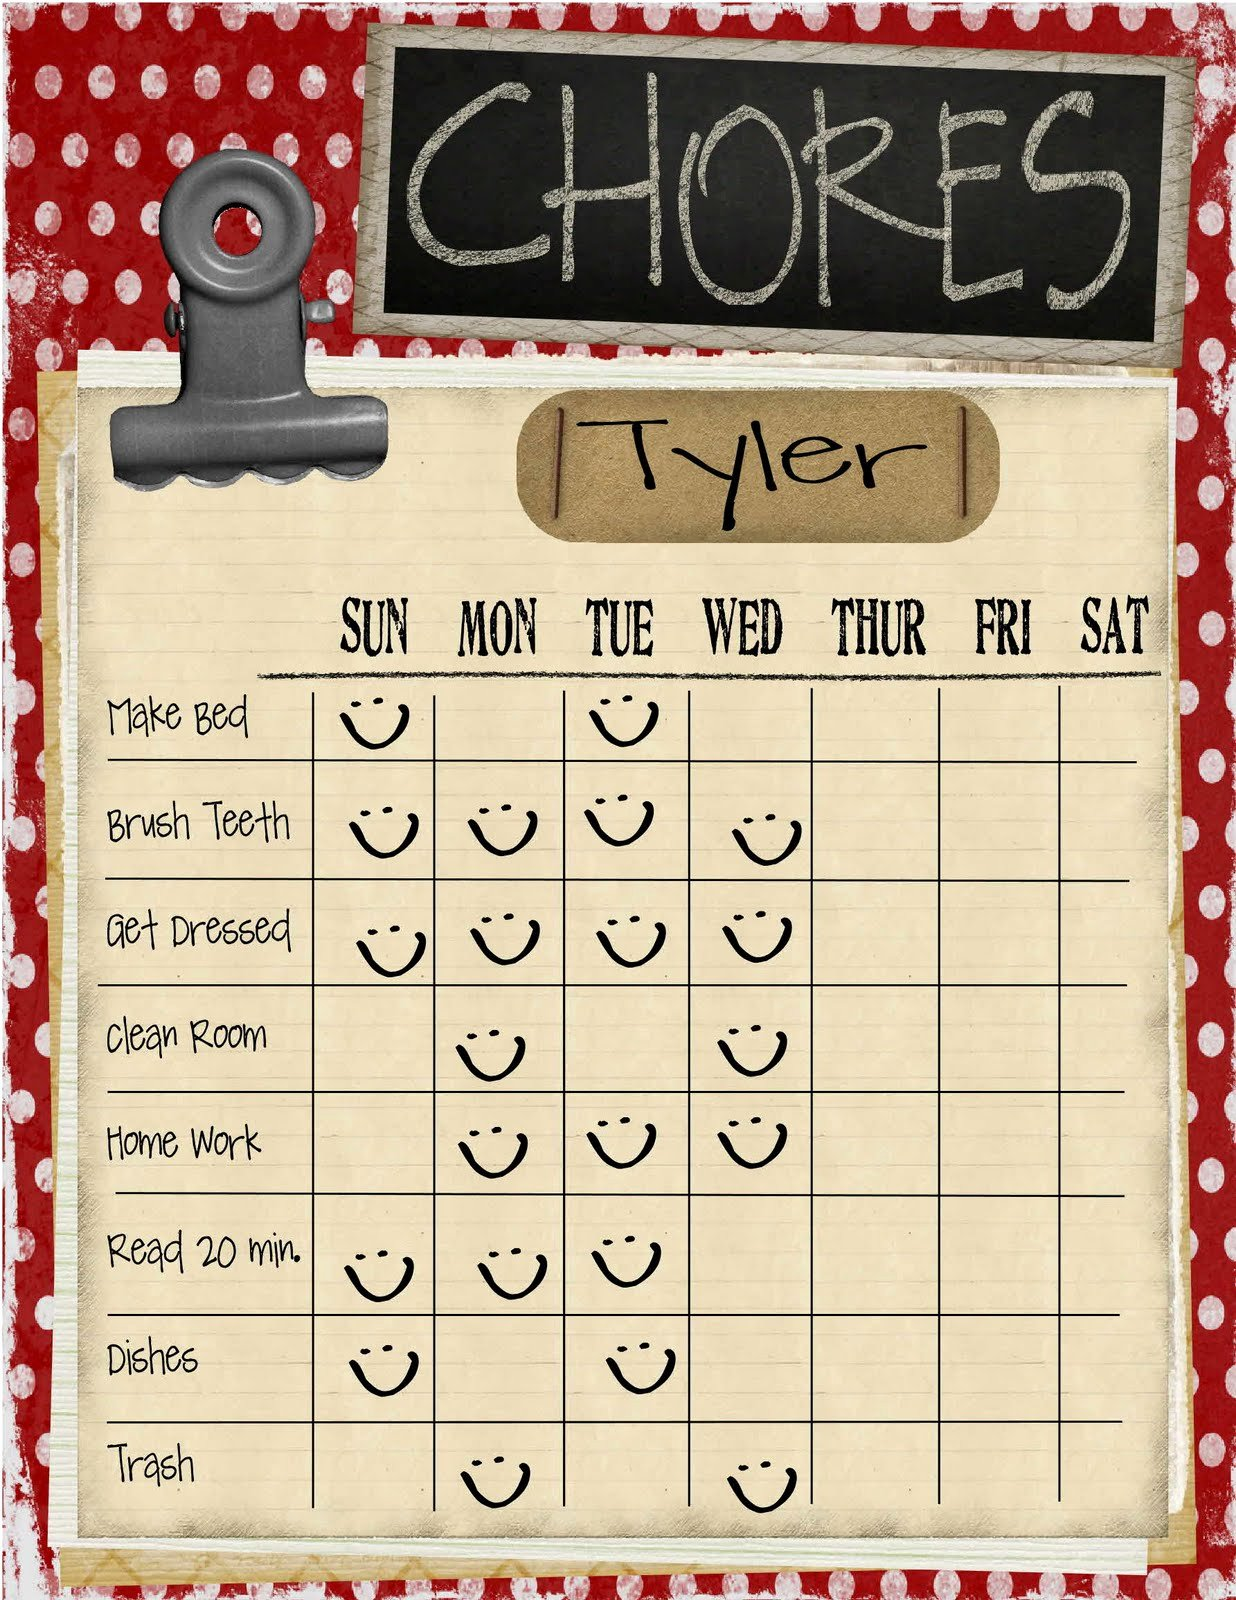 Chore Calendar for Family Fresh May 2013